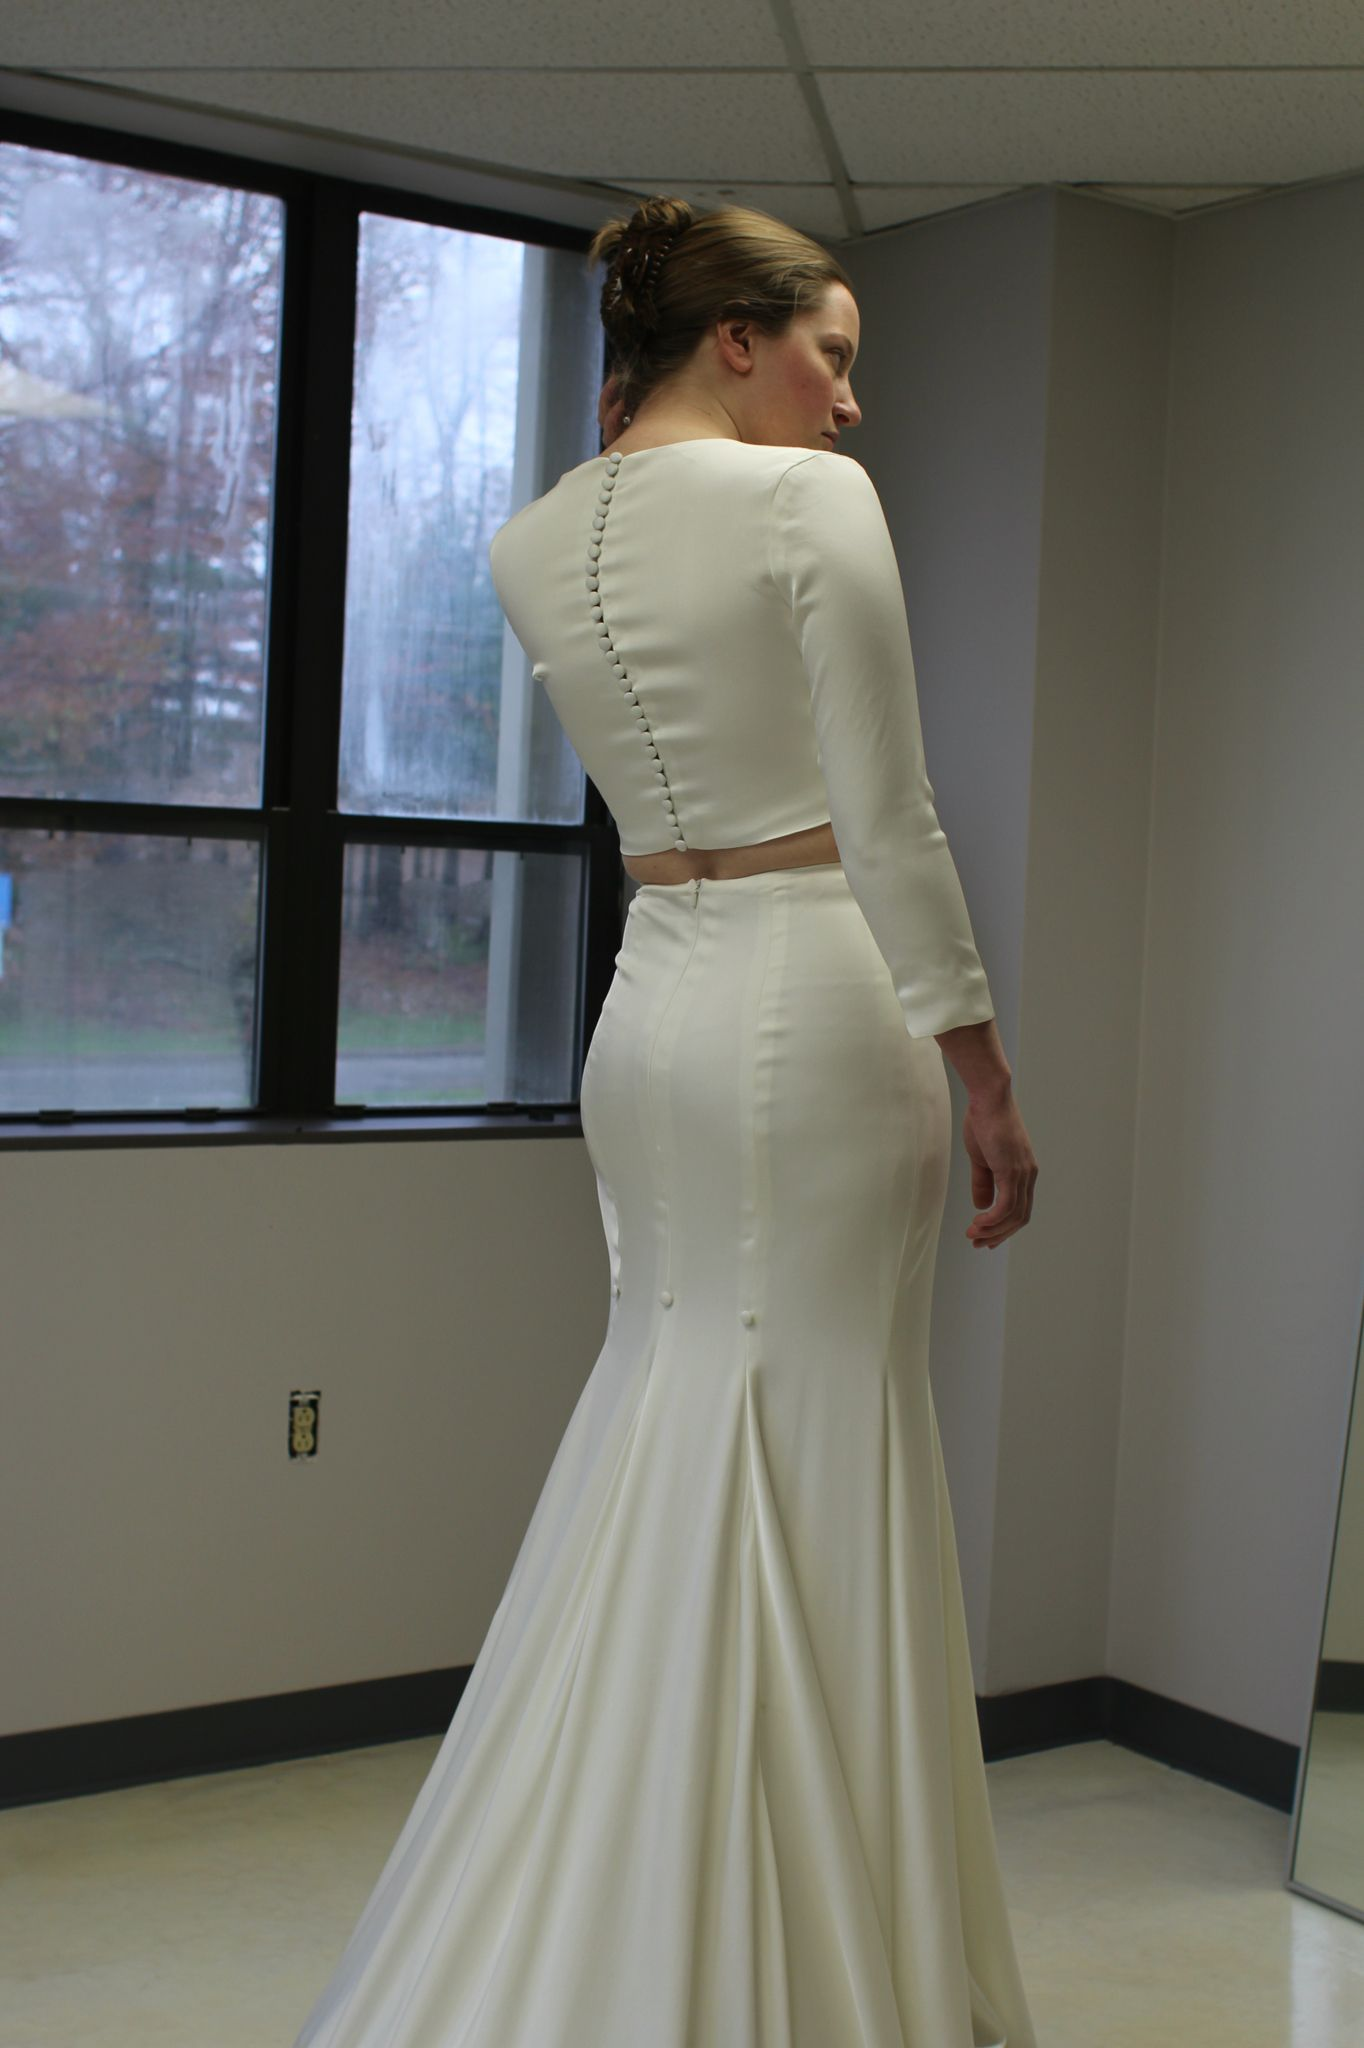 Michelle O'Malley custom wedding dress fitting